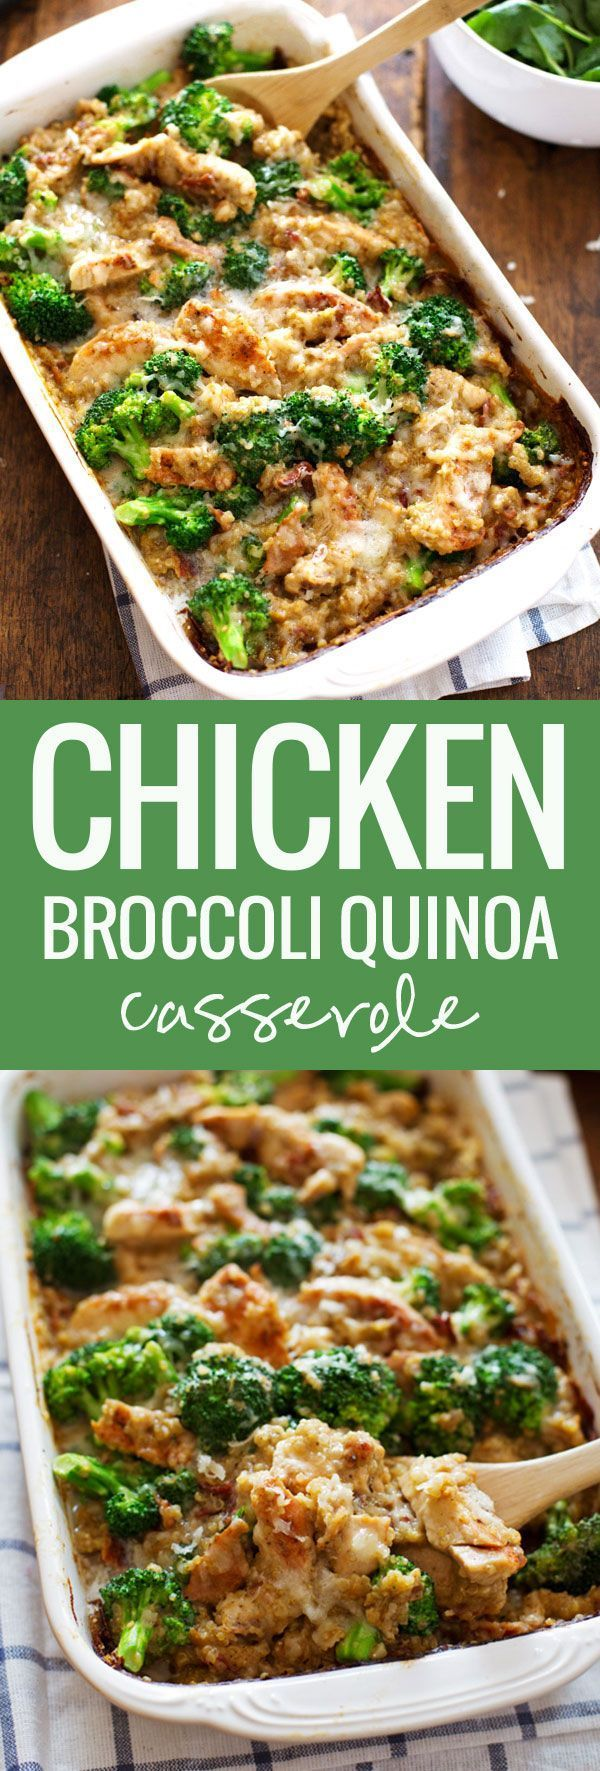 Creamy Chicken Quinoa and Broccoli Casserole - real food meets comfort food. From scratch, quick and easy, 350 calories.   pinchofyum.com